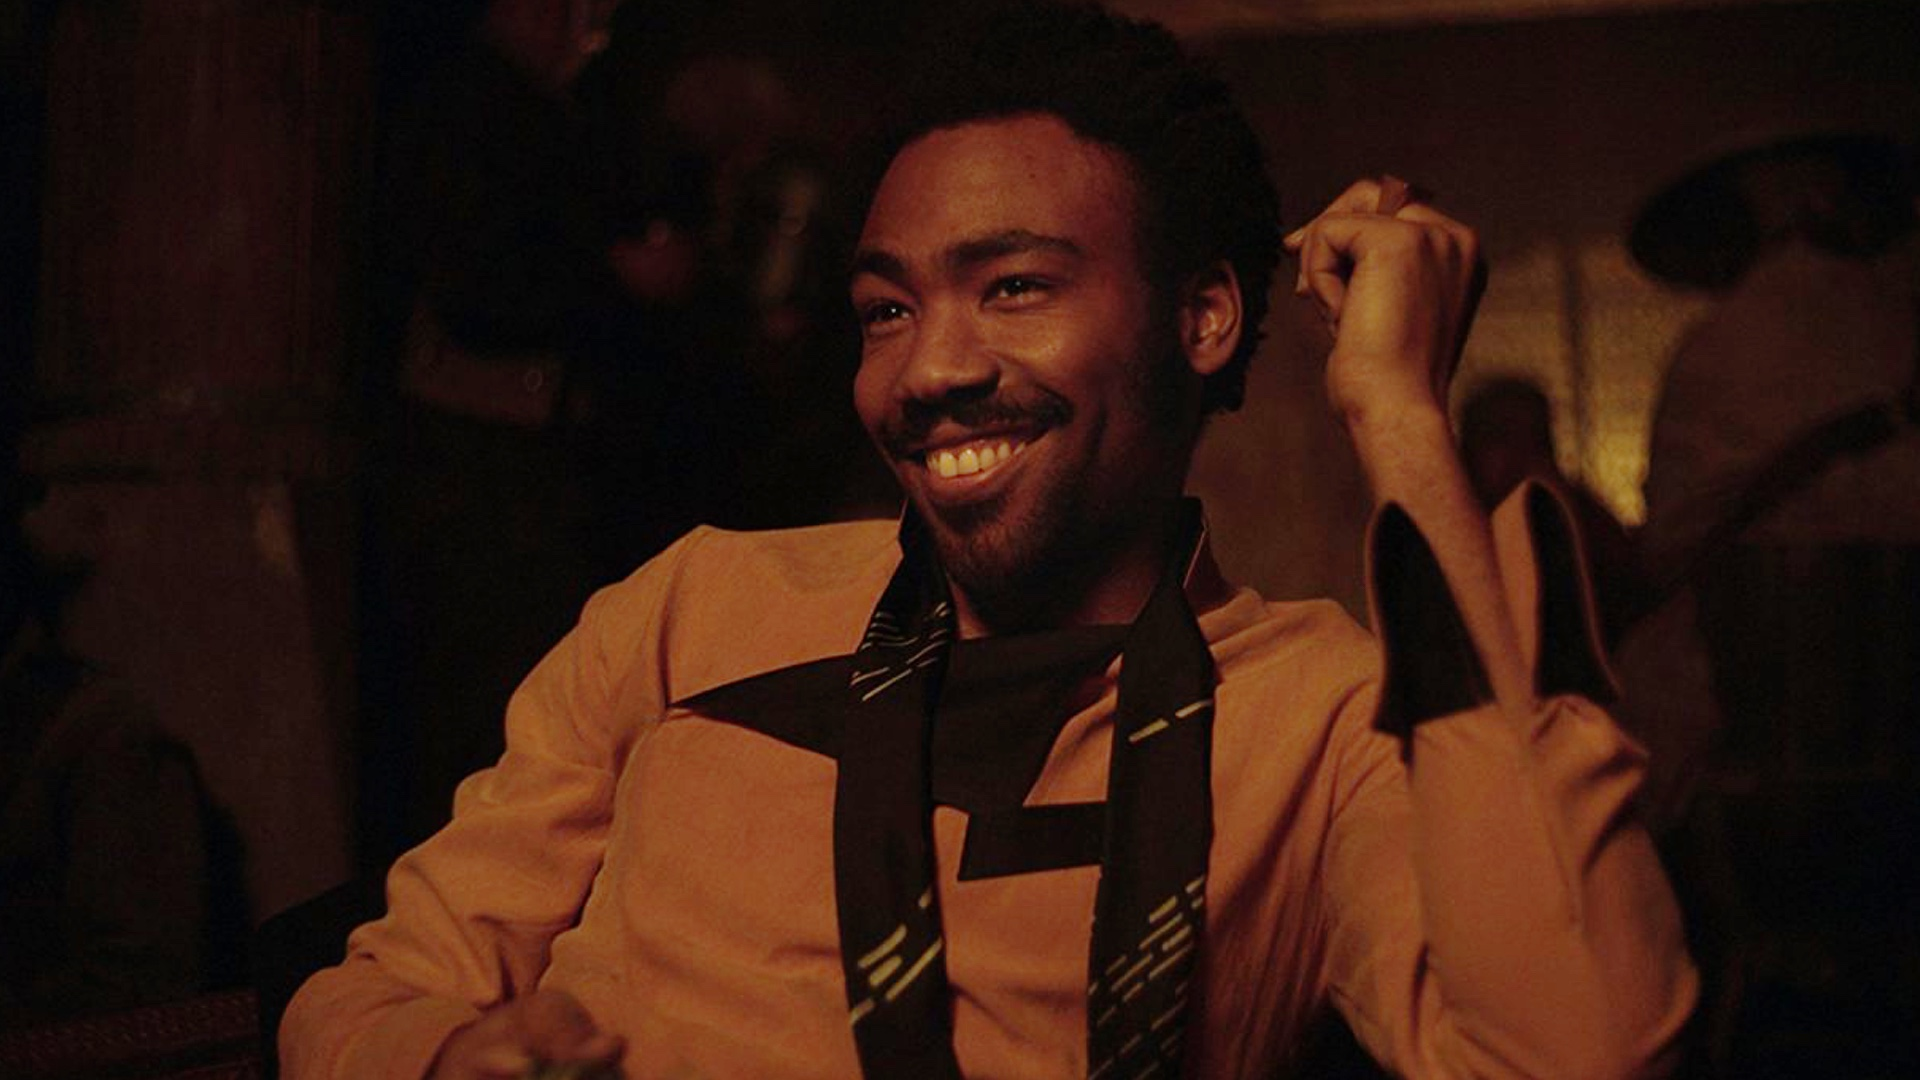 donald-glover-explains-why-solo-will-be-a-lot-more-fun-than-other-star-wars-films-social.jpg